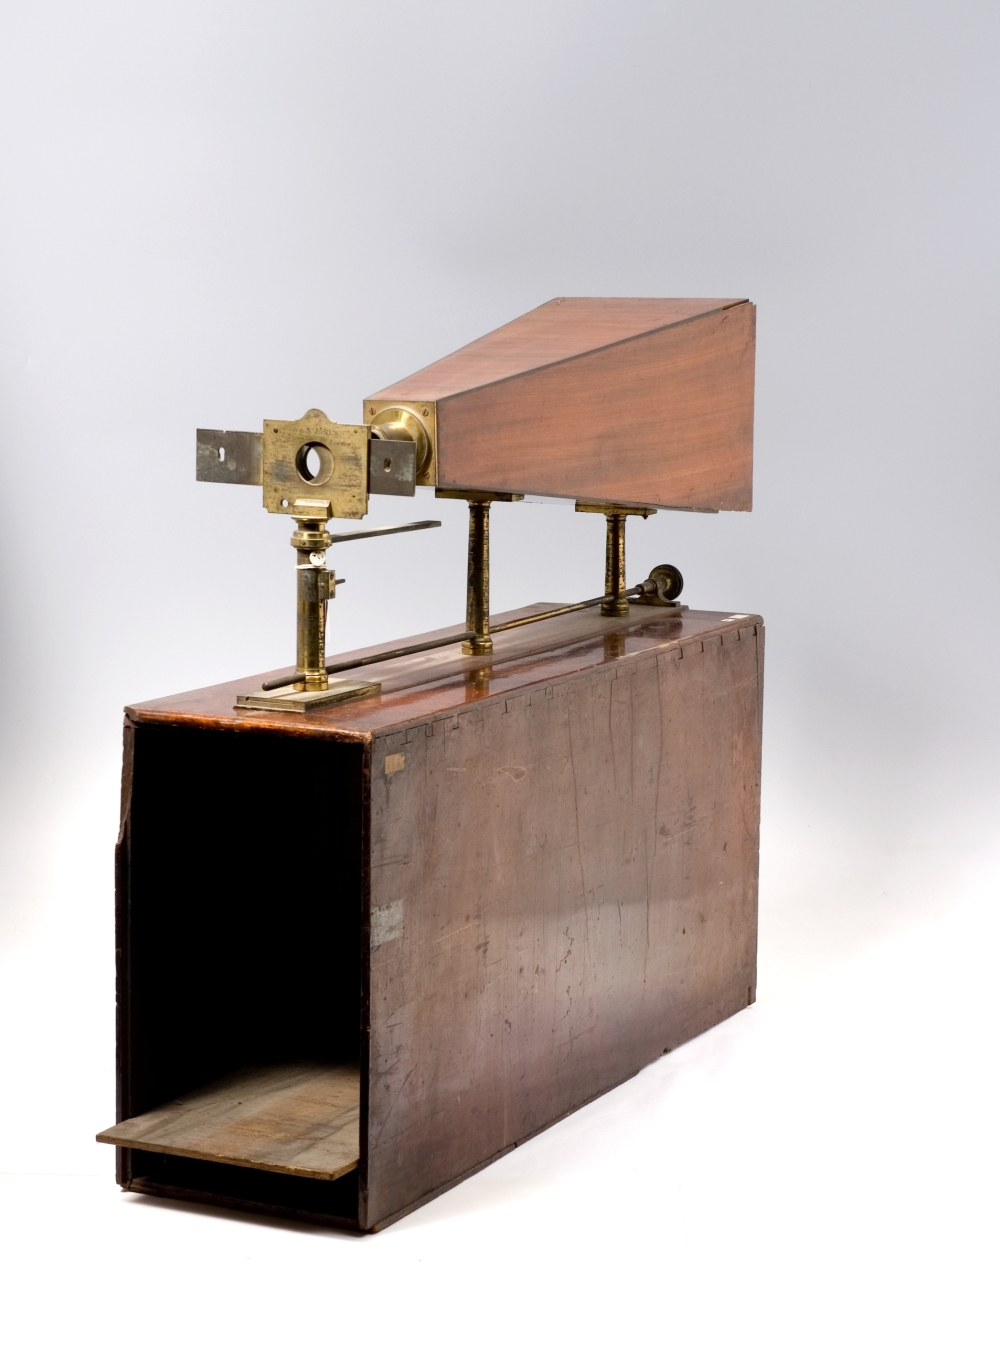 preview image for Lucernal Microscope with Case and Accessories, by W.S. Jones, London